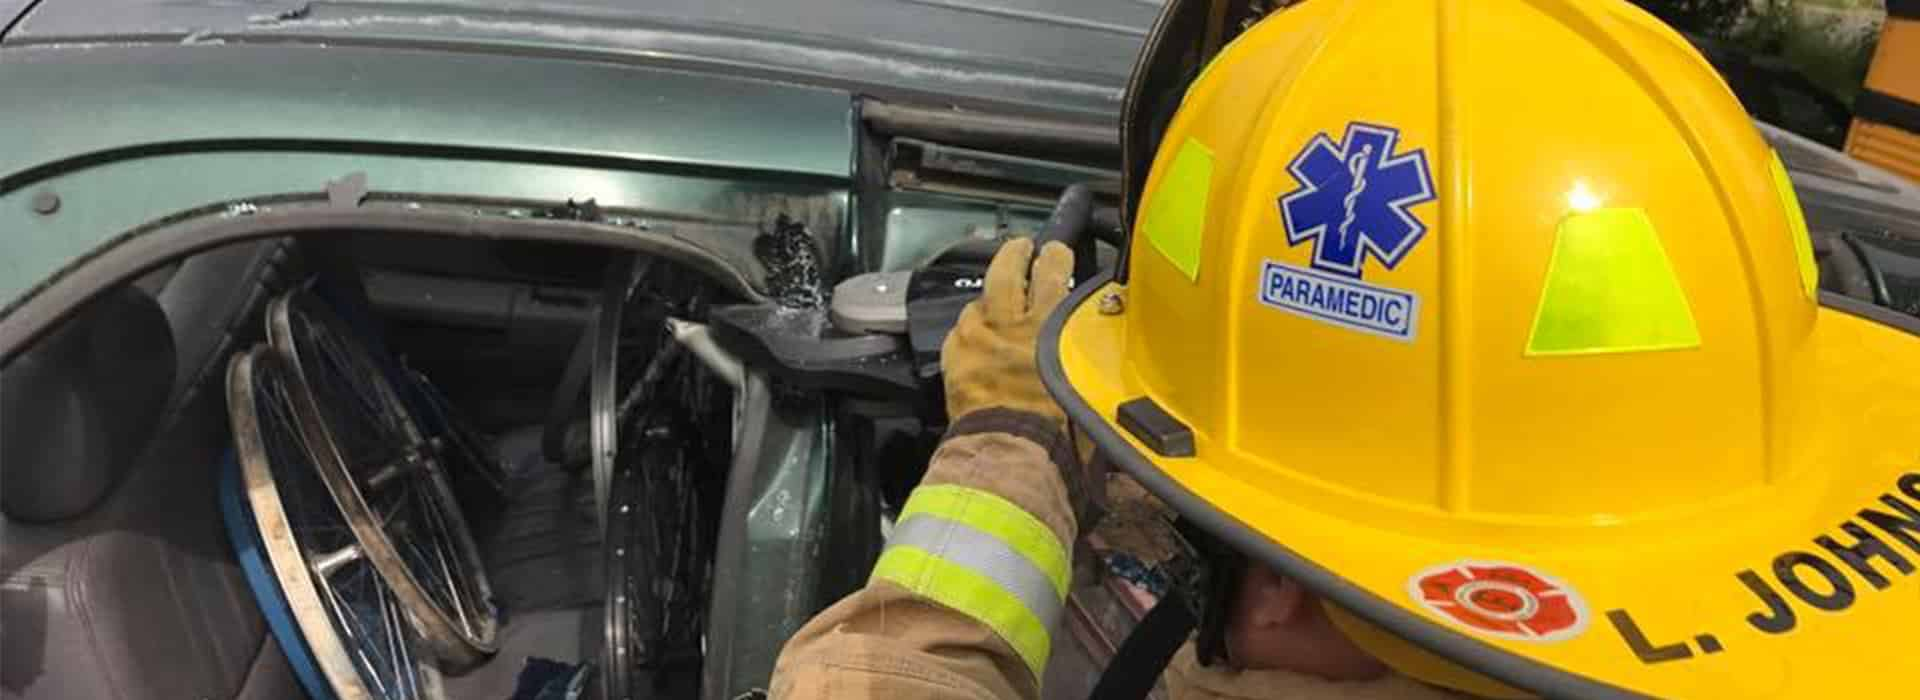 A career Molalla firefighter uses a hydraulic tool to cut a vehicle.